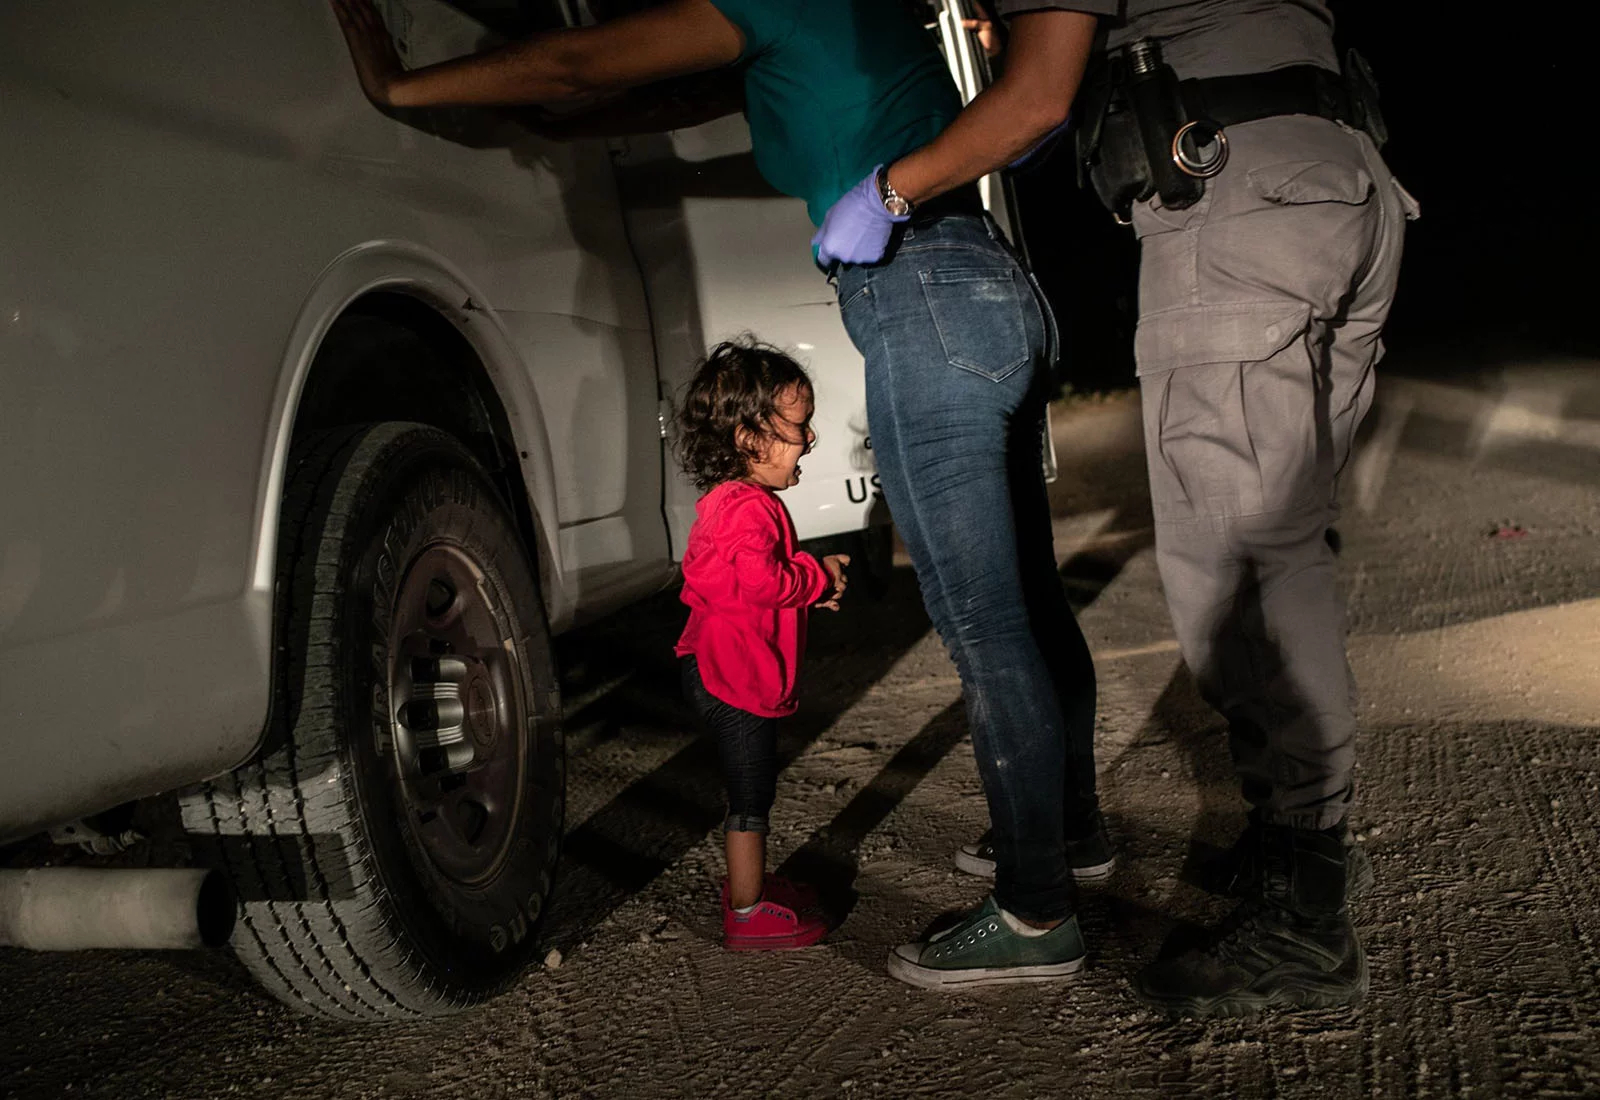 World Press Photo 2019: Estas son las impactantes imágenes ganadoras del concurso